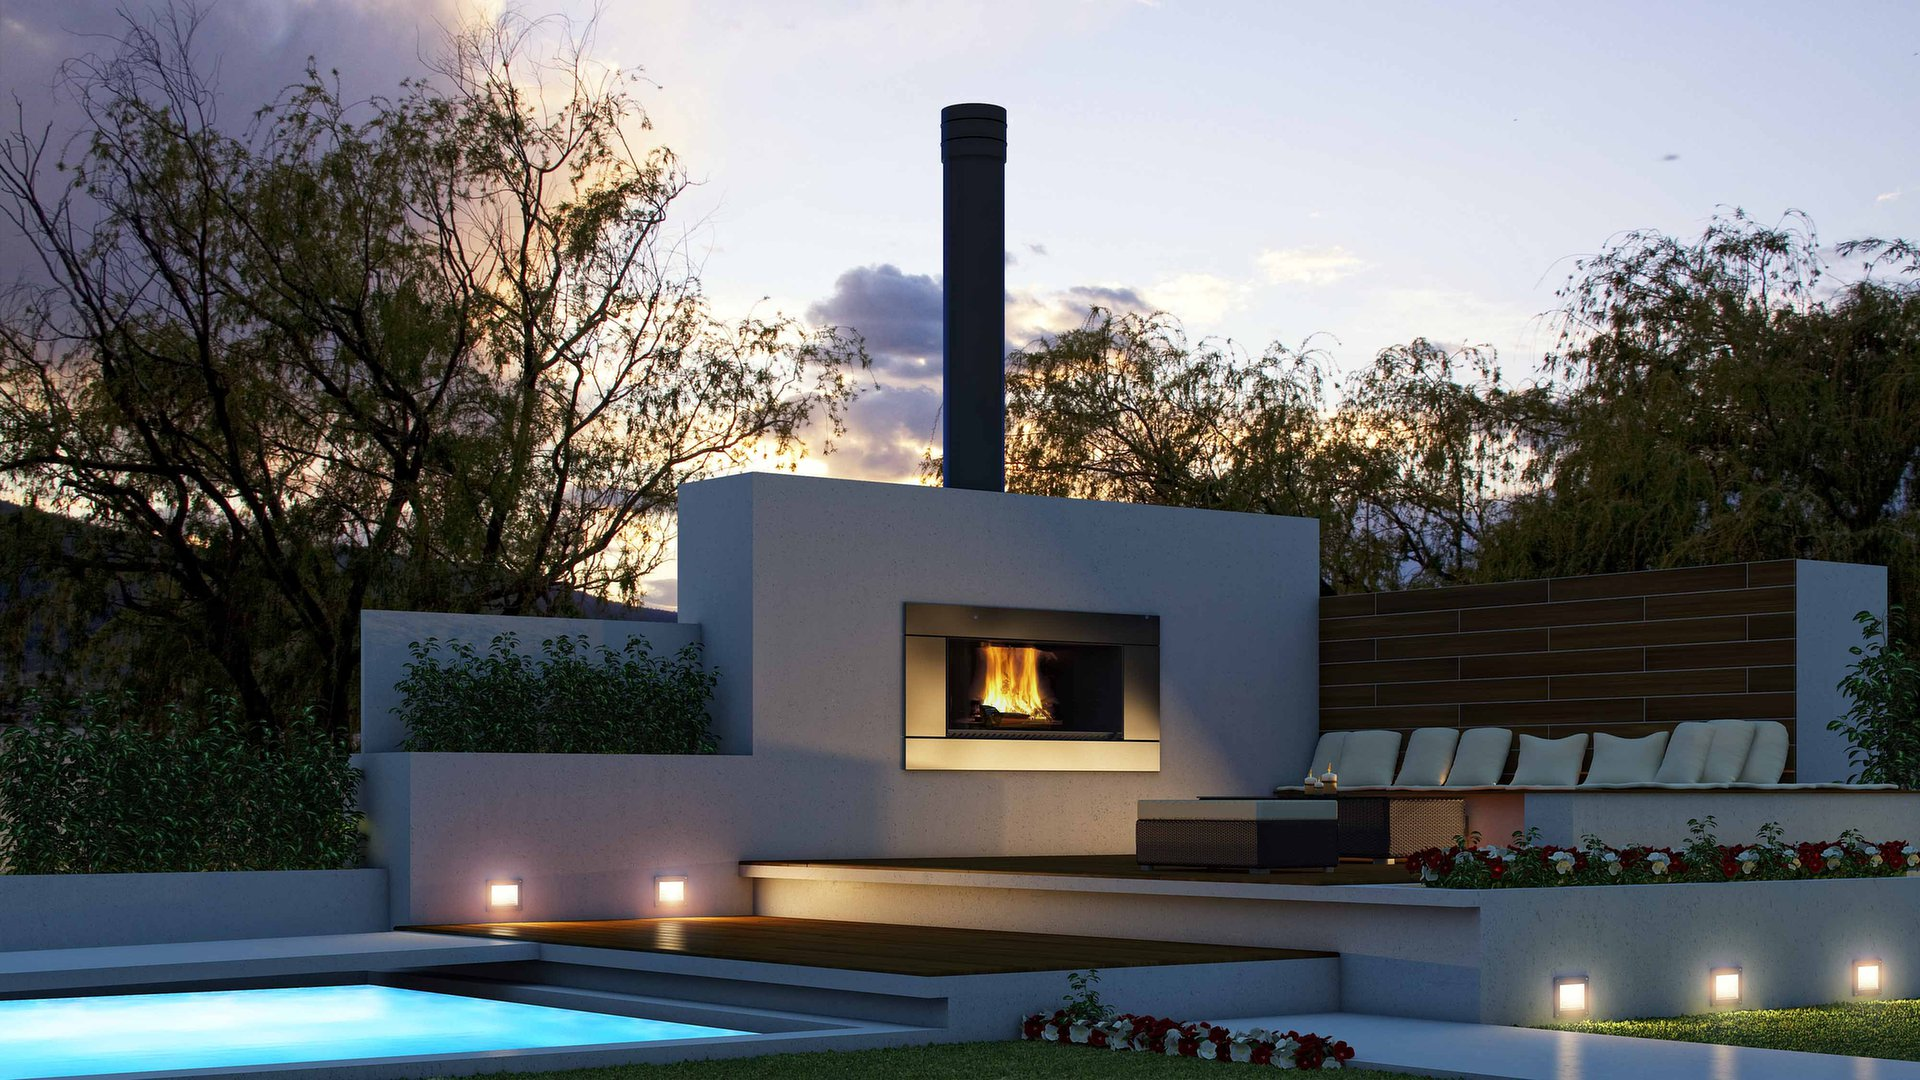 Contemporary outdoor fireplace plans outdoor designs modern outdoor fireplace design ideas solutioingenieria Choice Image